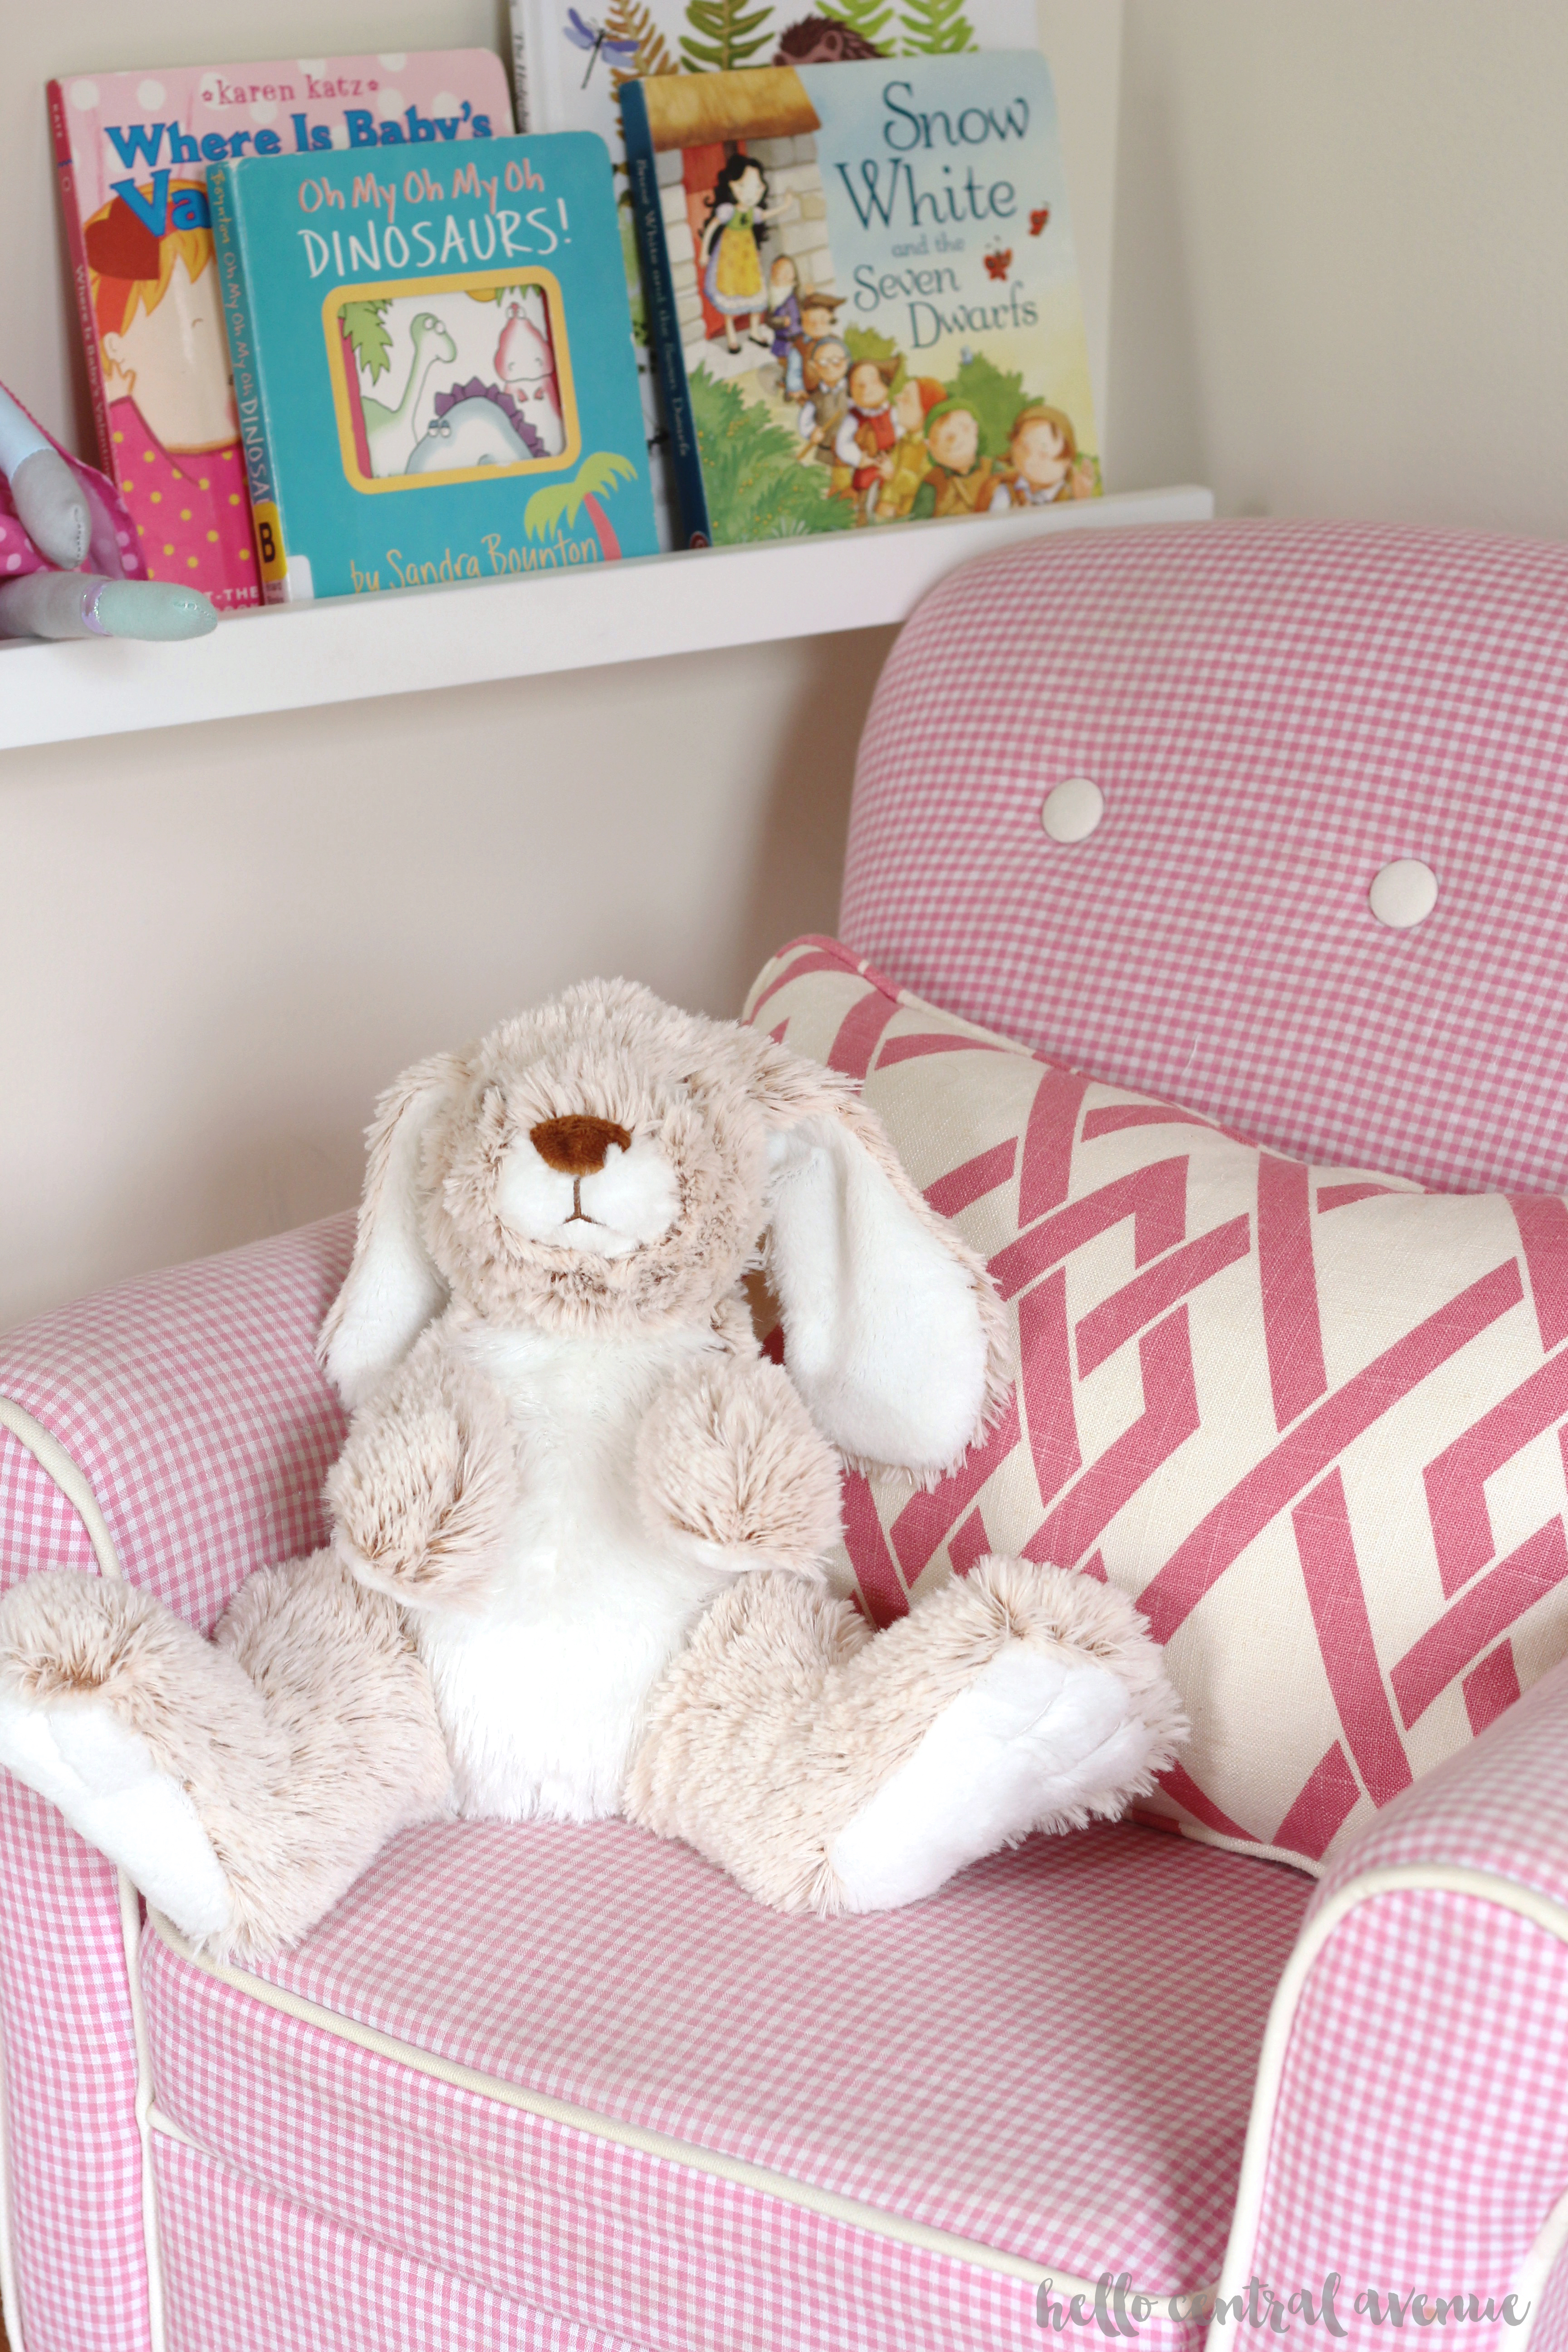 Here is a cozy and pink reading nook using Target picture ledges to display books.